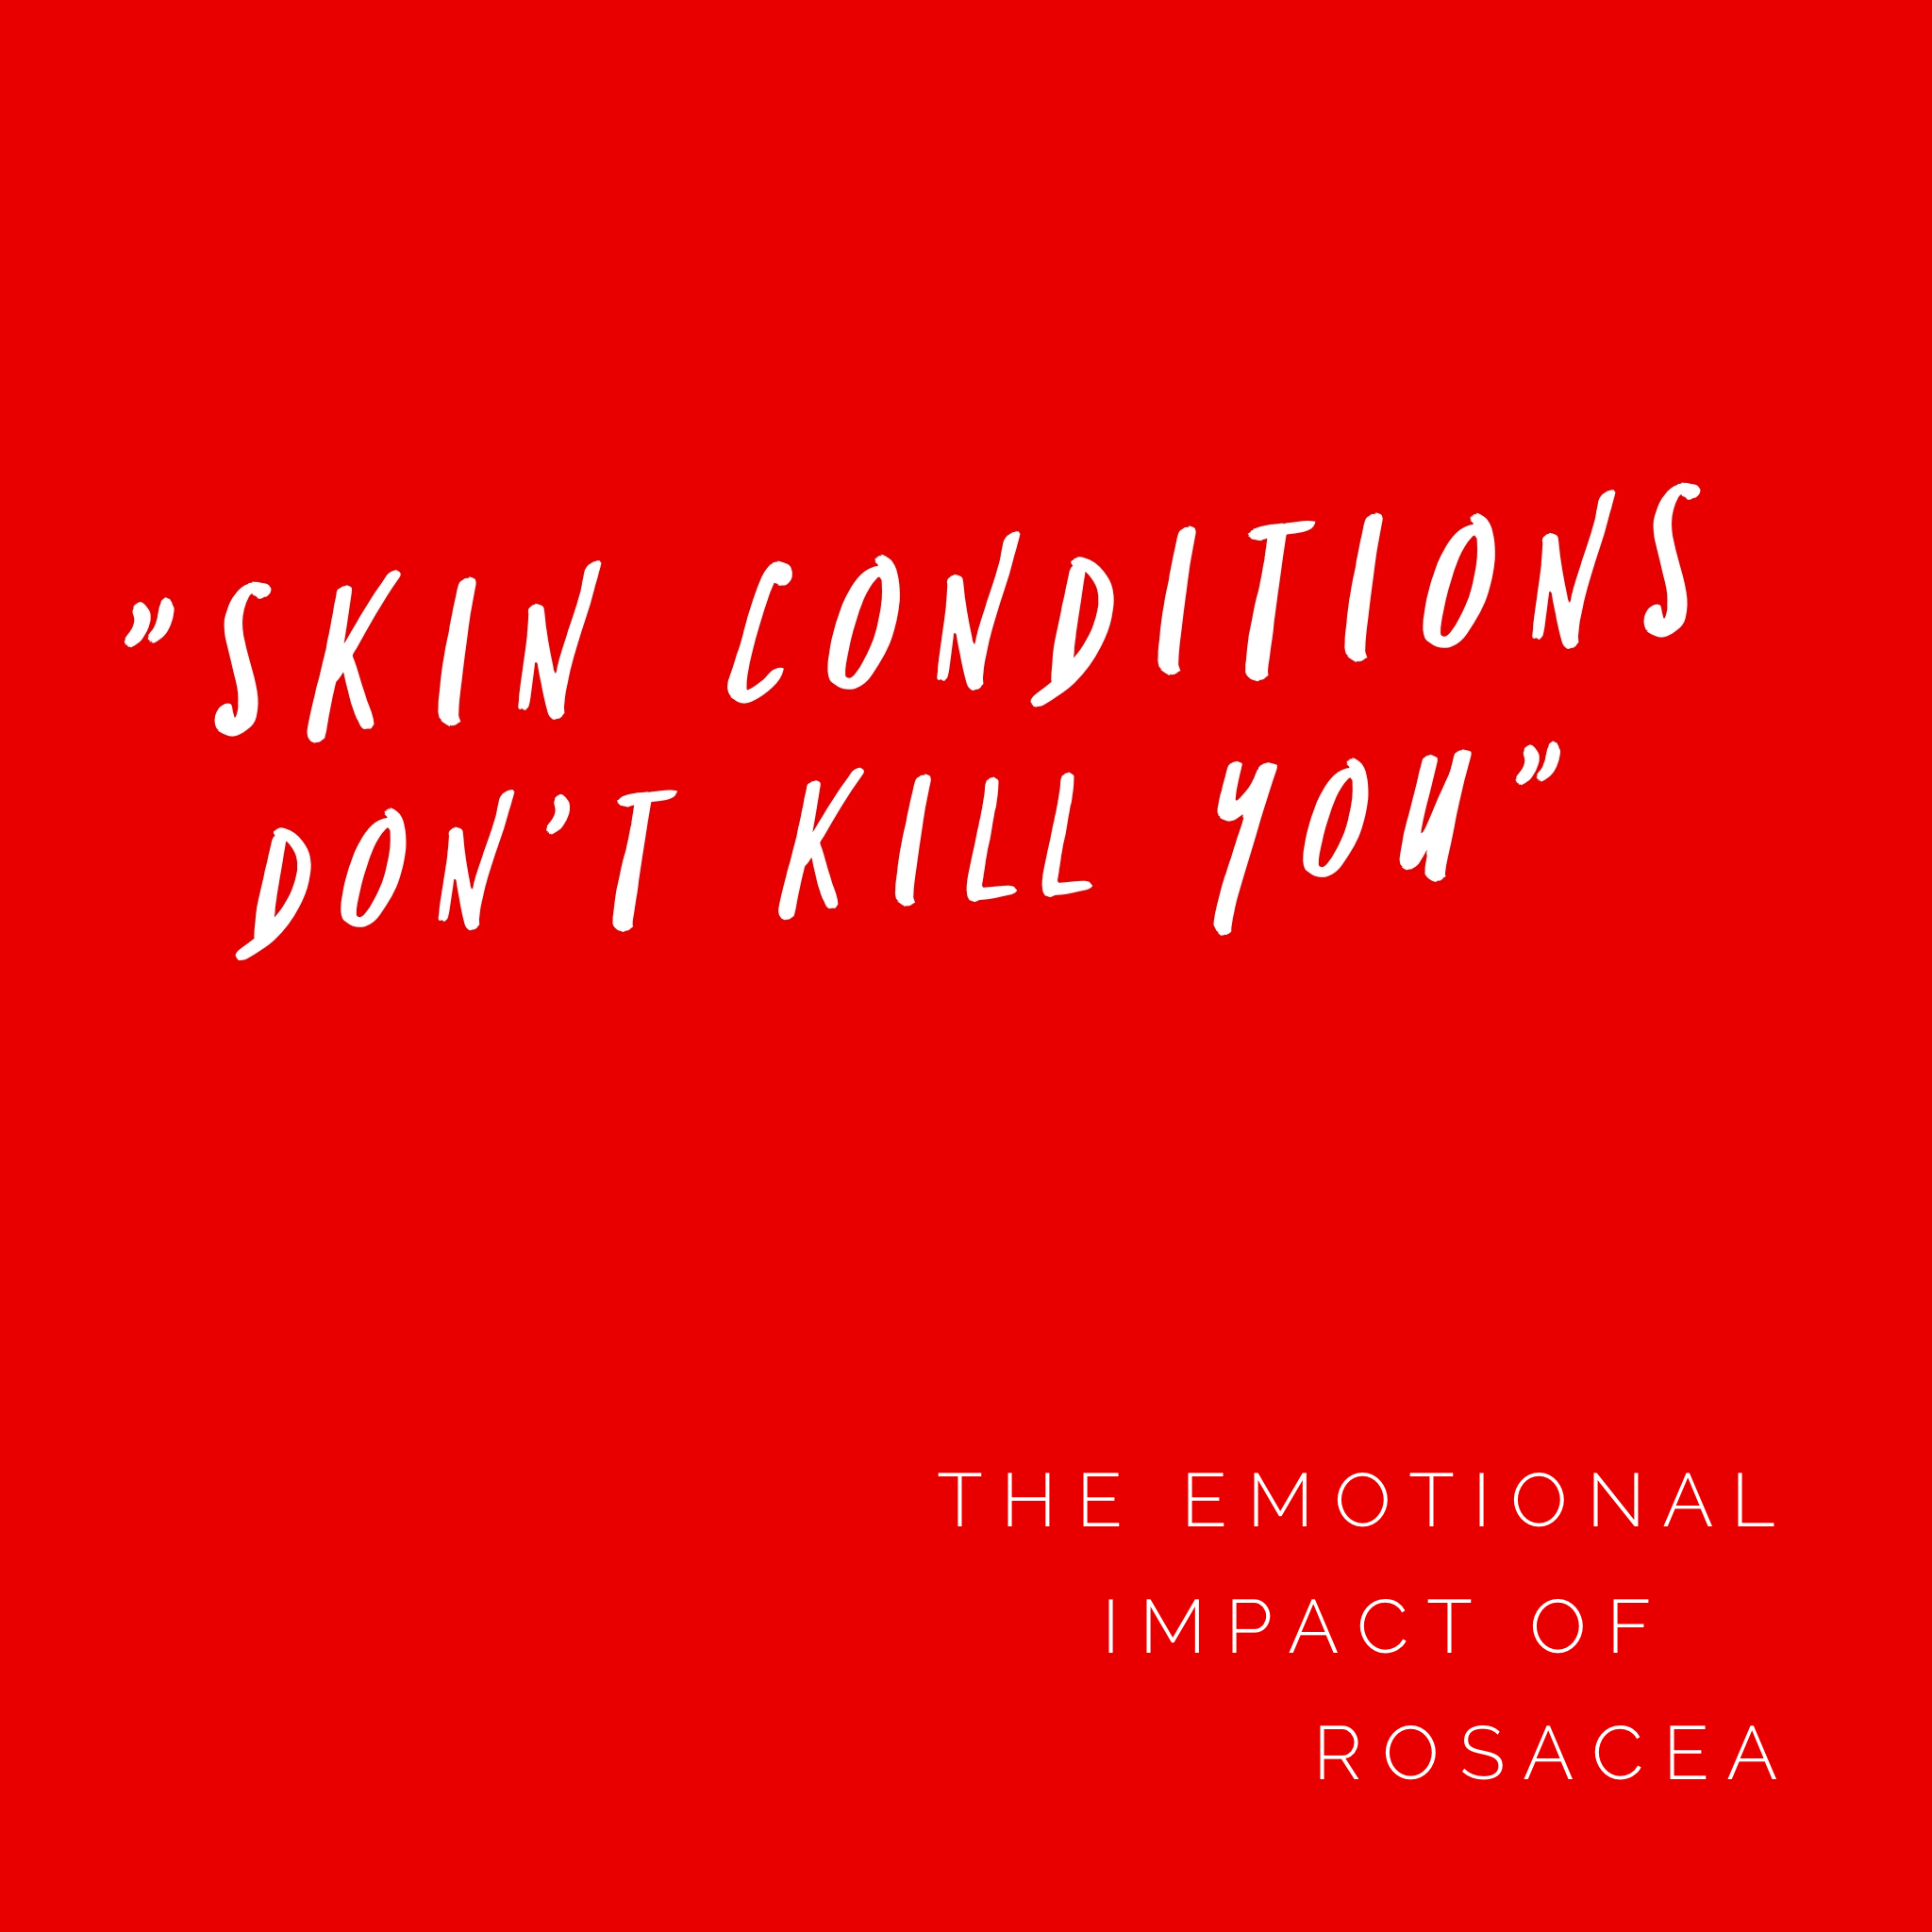 The emotional impact of rosacea (and all skin conditions)